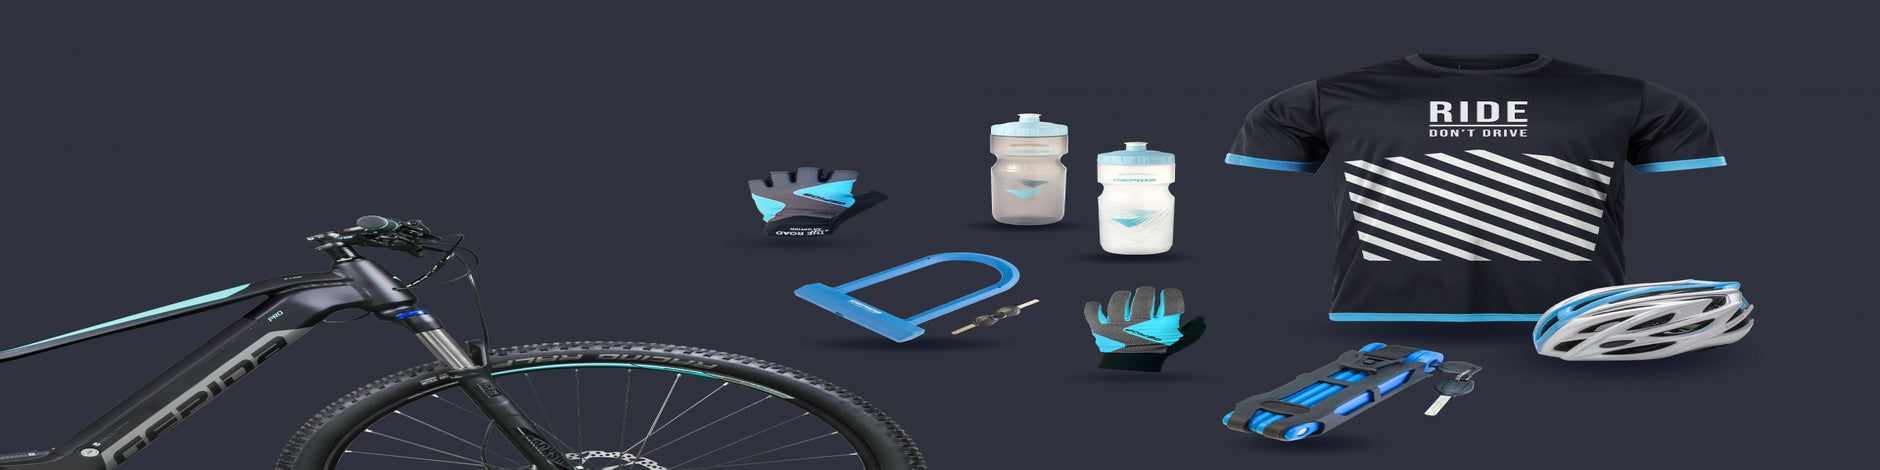 Extensive Bicycle Accessories At Affordable Price